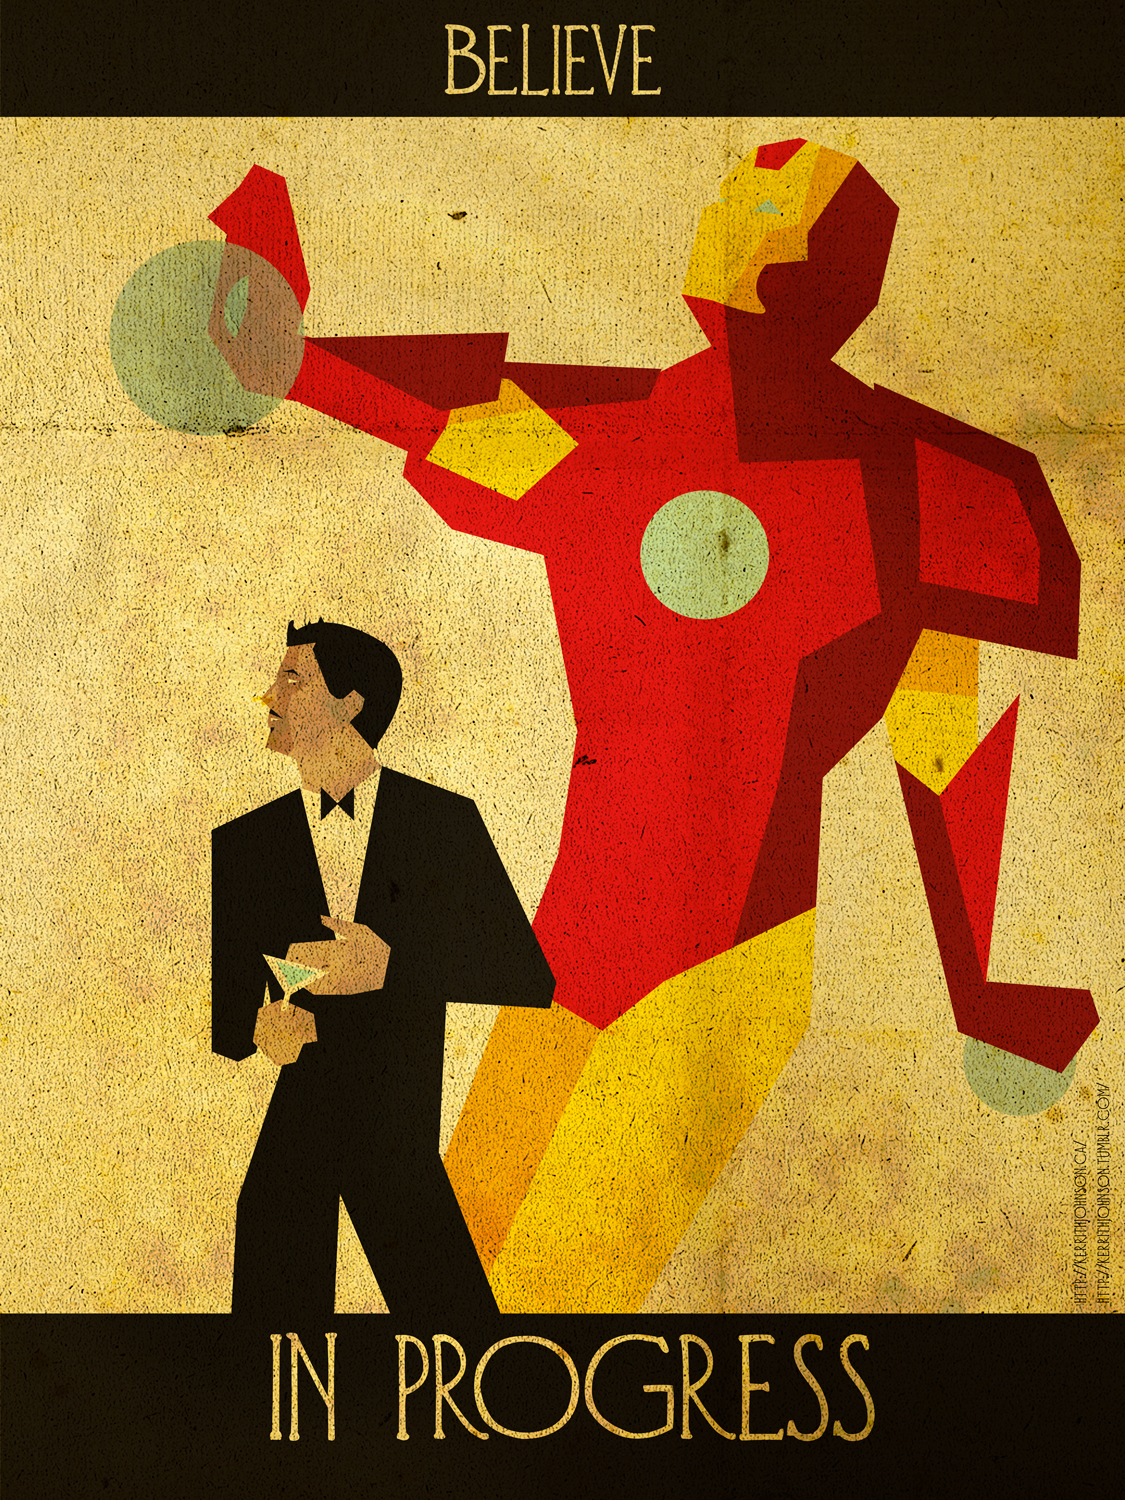 Believe - IronMan by KerrithJohnson